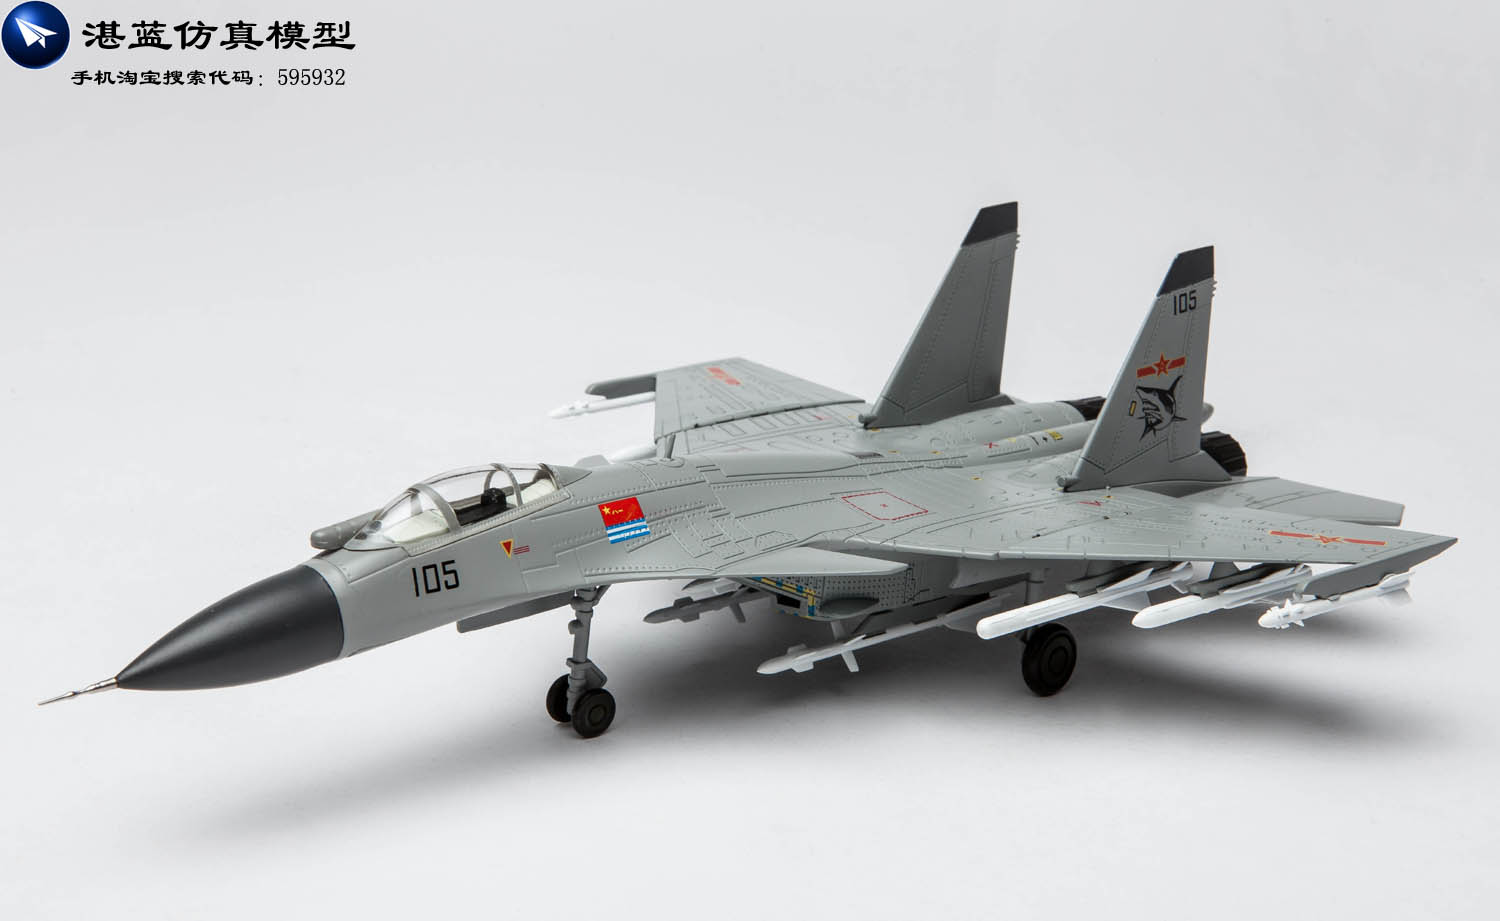 YJ 1/72 Scale Airplane Model Toys J-15 Flying Shark Flanker-D Fighter Diecast Metal Plane Model Toy For Collection/Gift mr froger carcharodon megalodon model giant tooth shark sphyrna aquatic creatures wild animals zoo modeling plastic sea lift toy